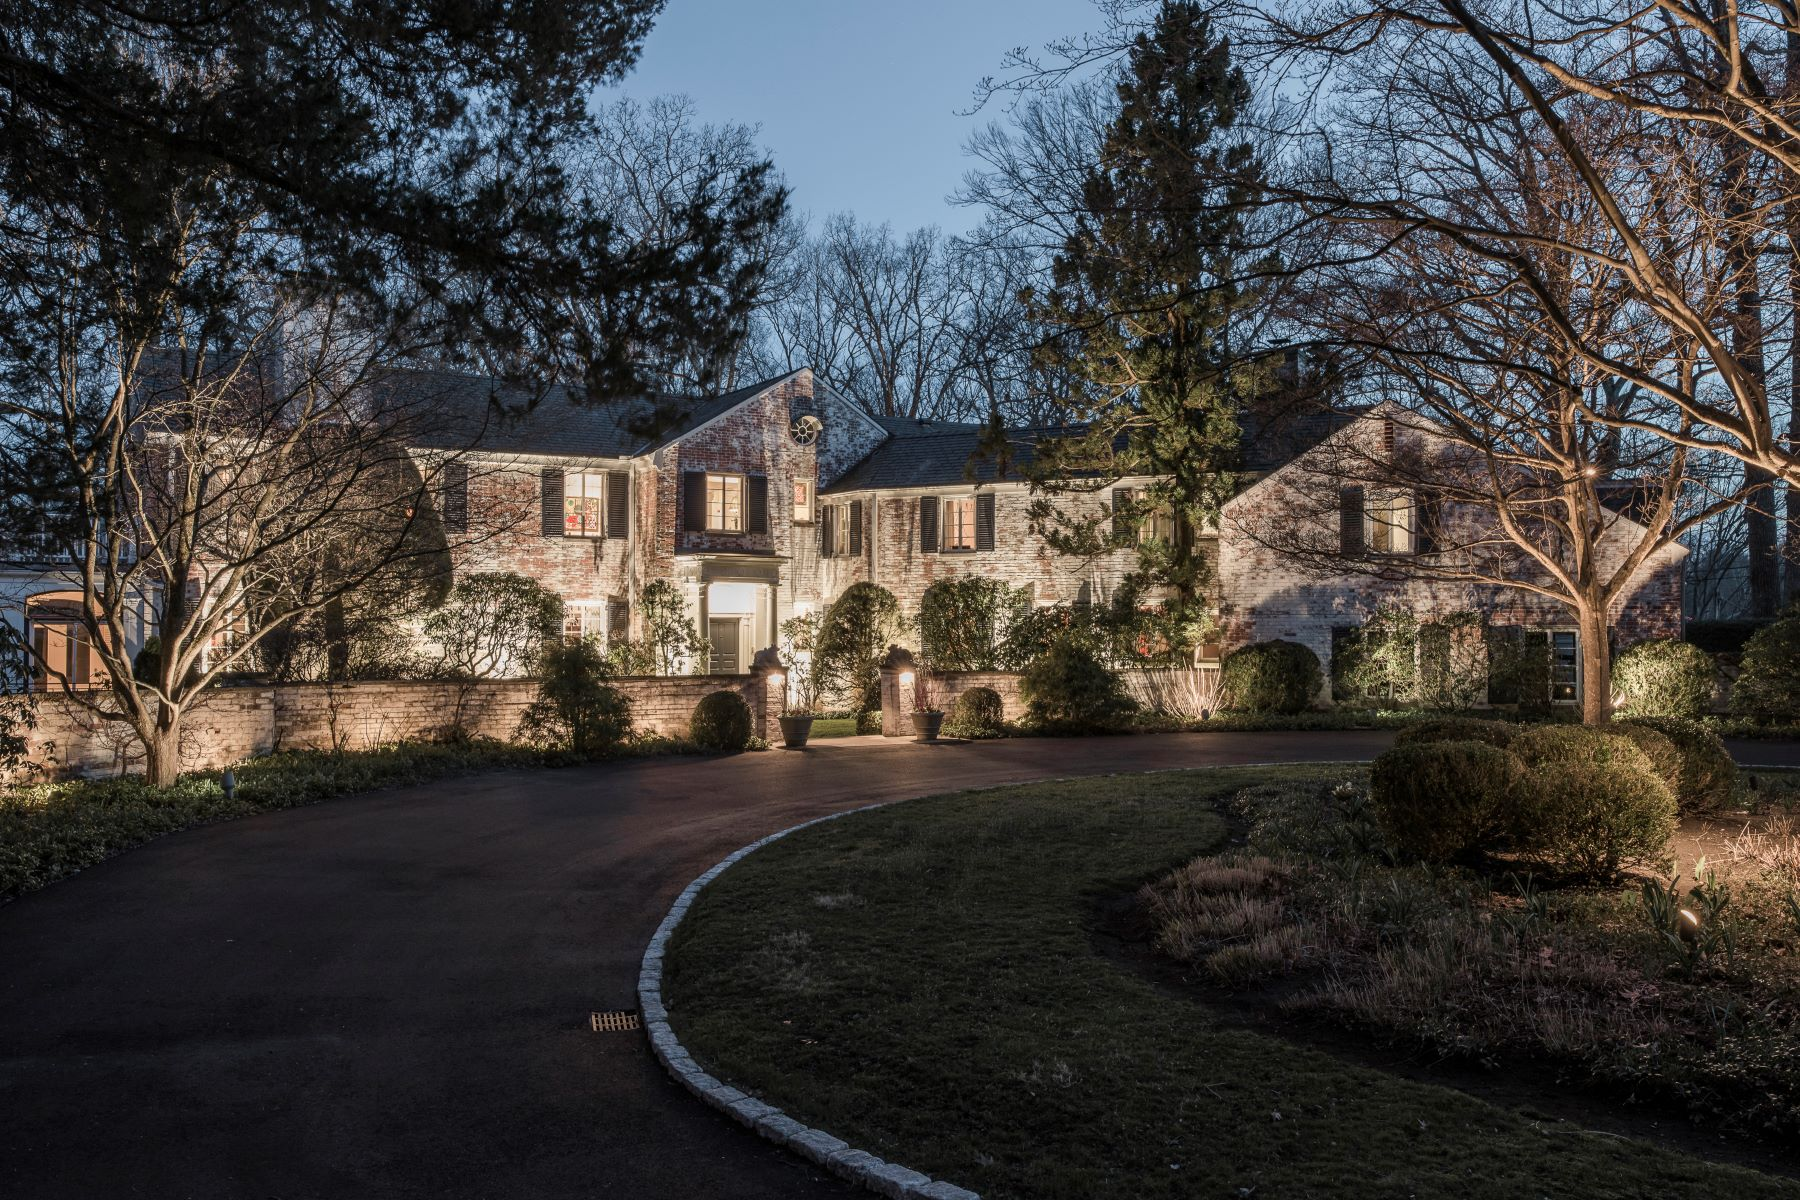 Single Family Homes for Active at 82 Brookwood Lane New Canaan, Connecticut 06840 United States